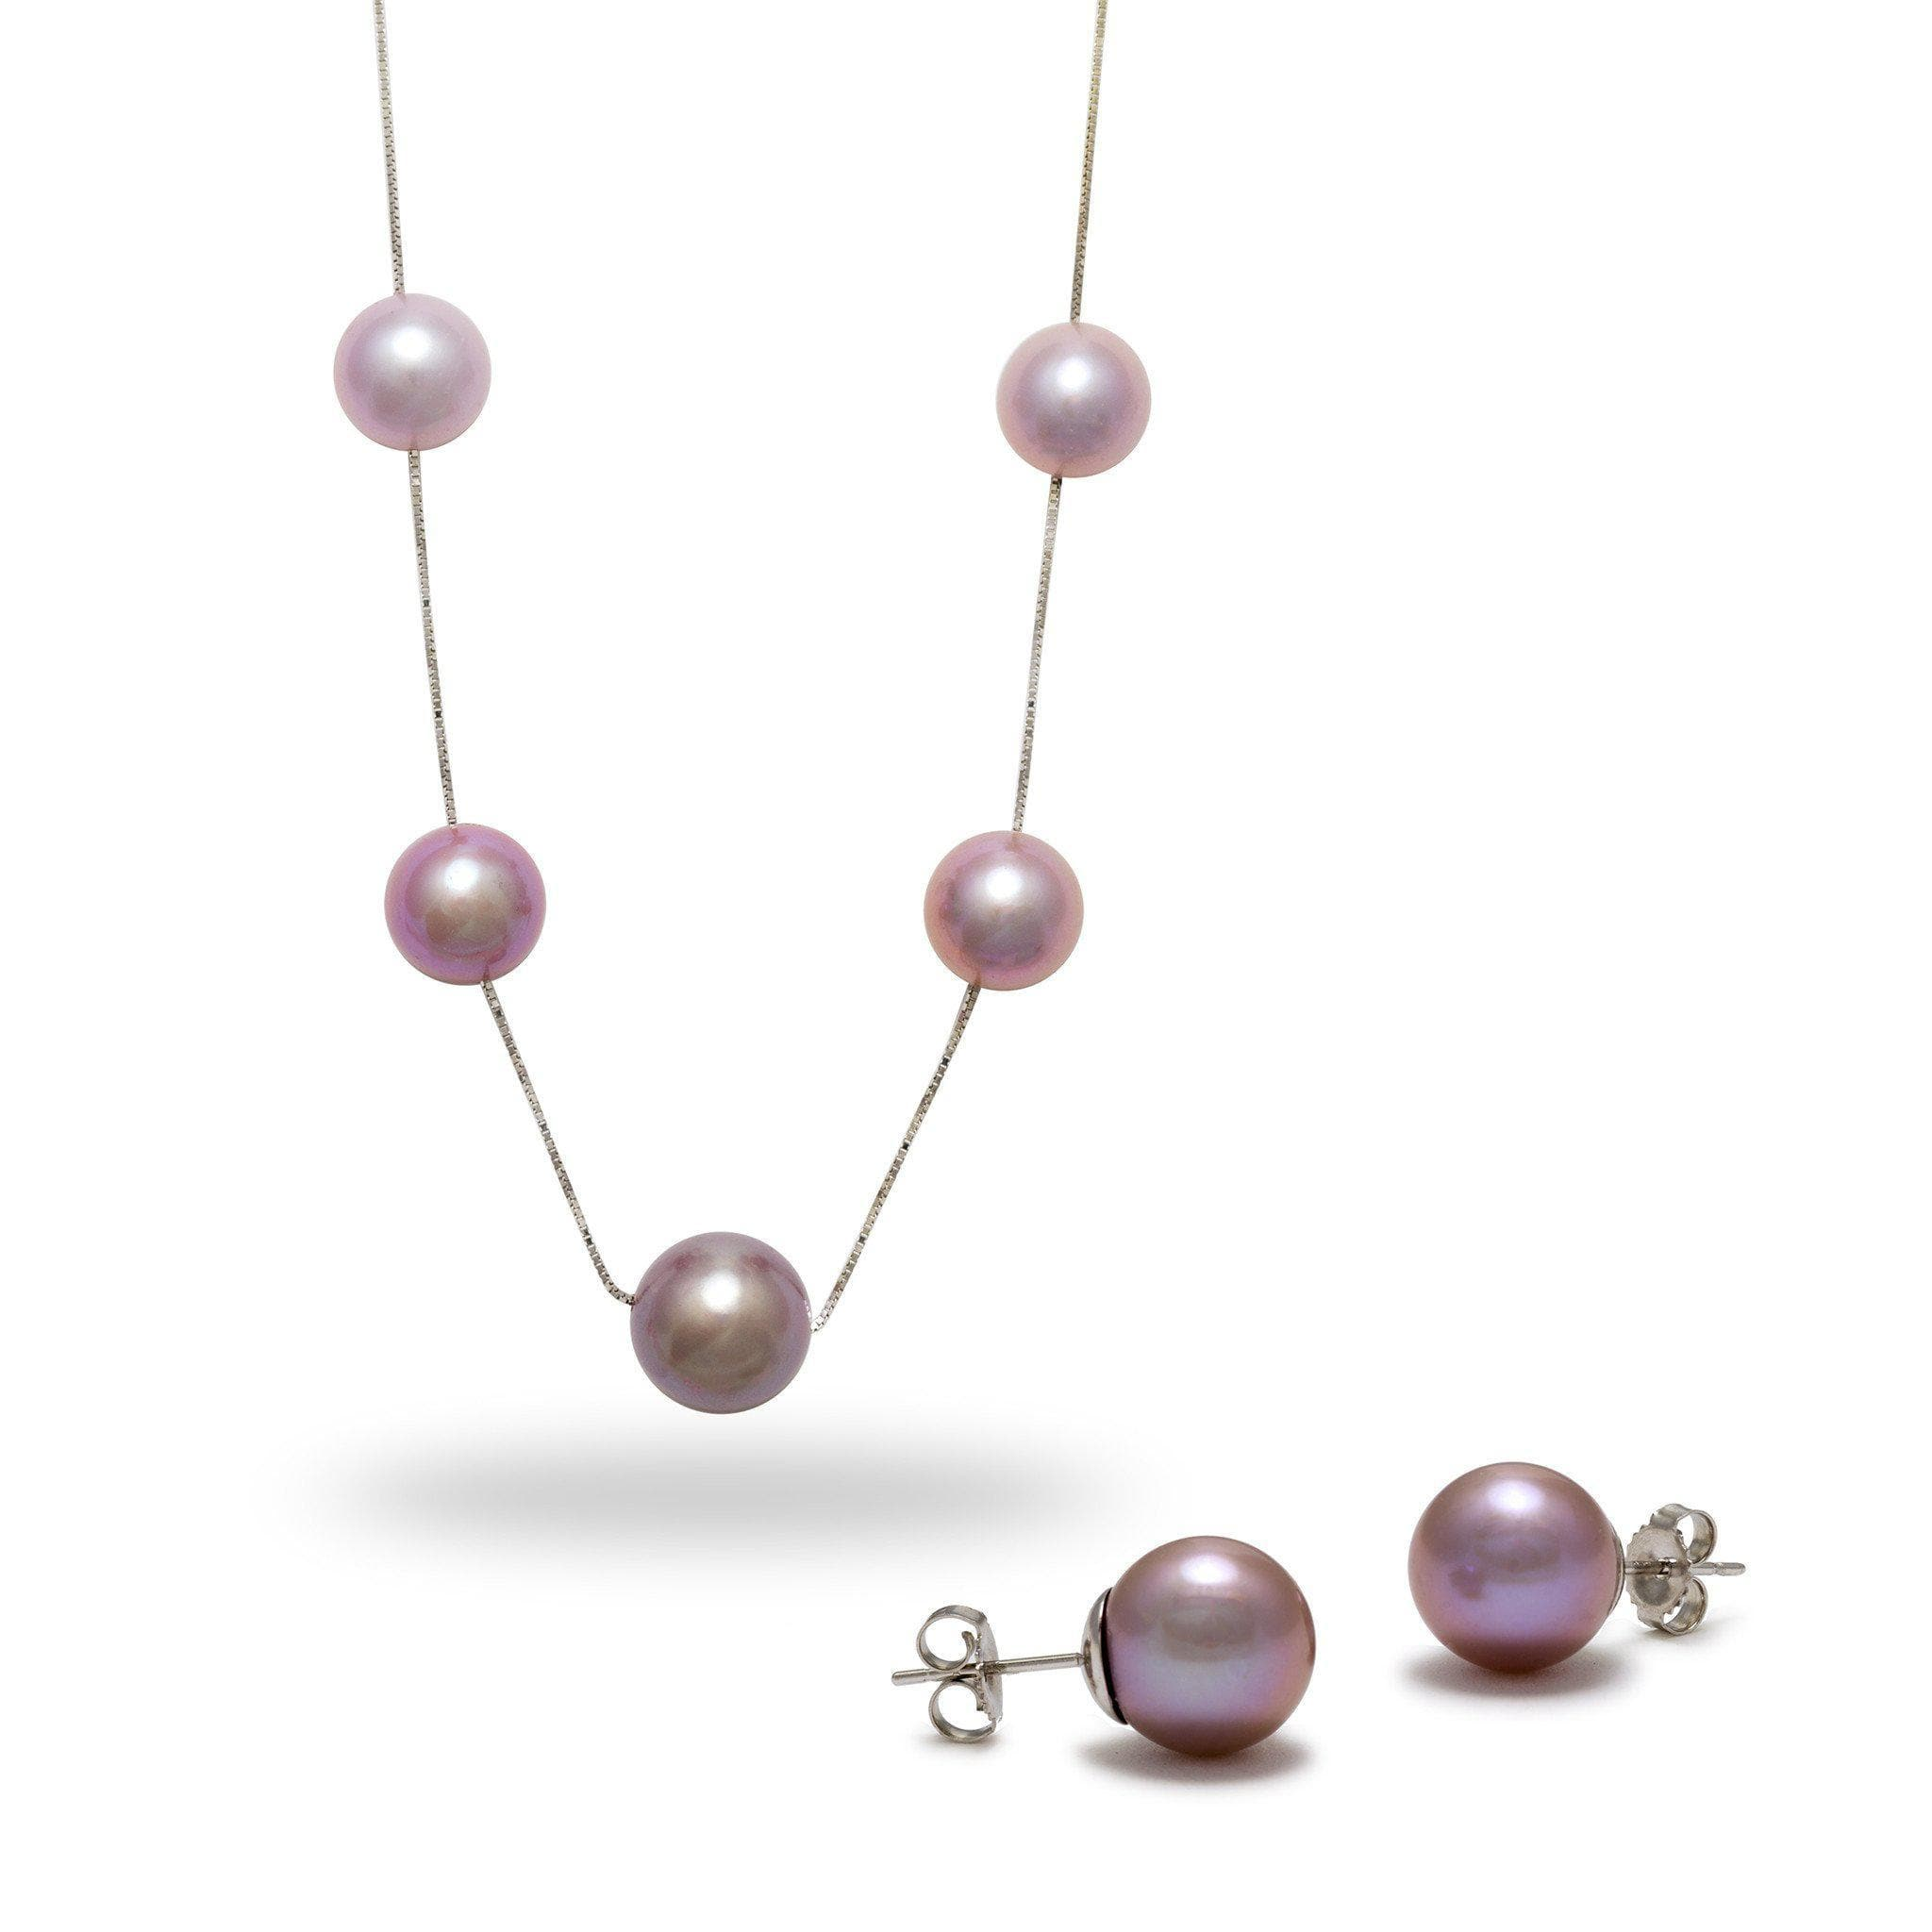 halo in types divers online shop maui lavender at collections with diamonds pearls pearl jewelry gold rose freshwater pendant